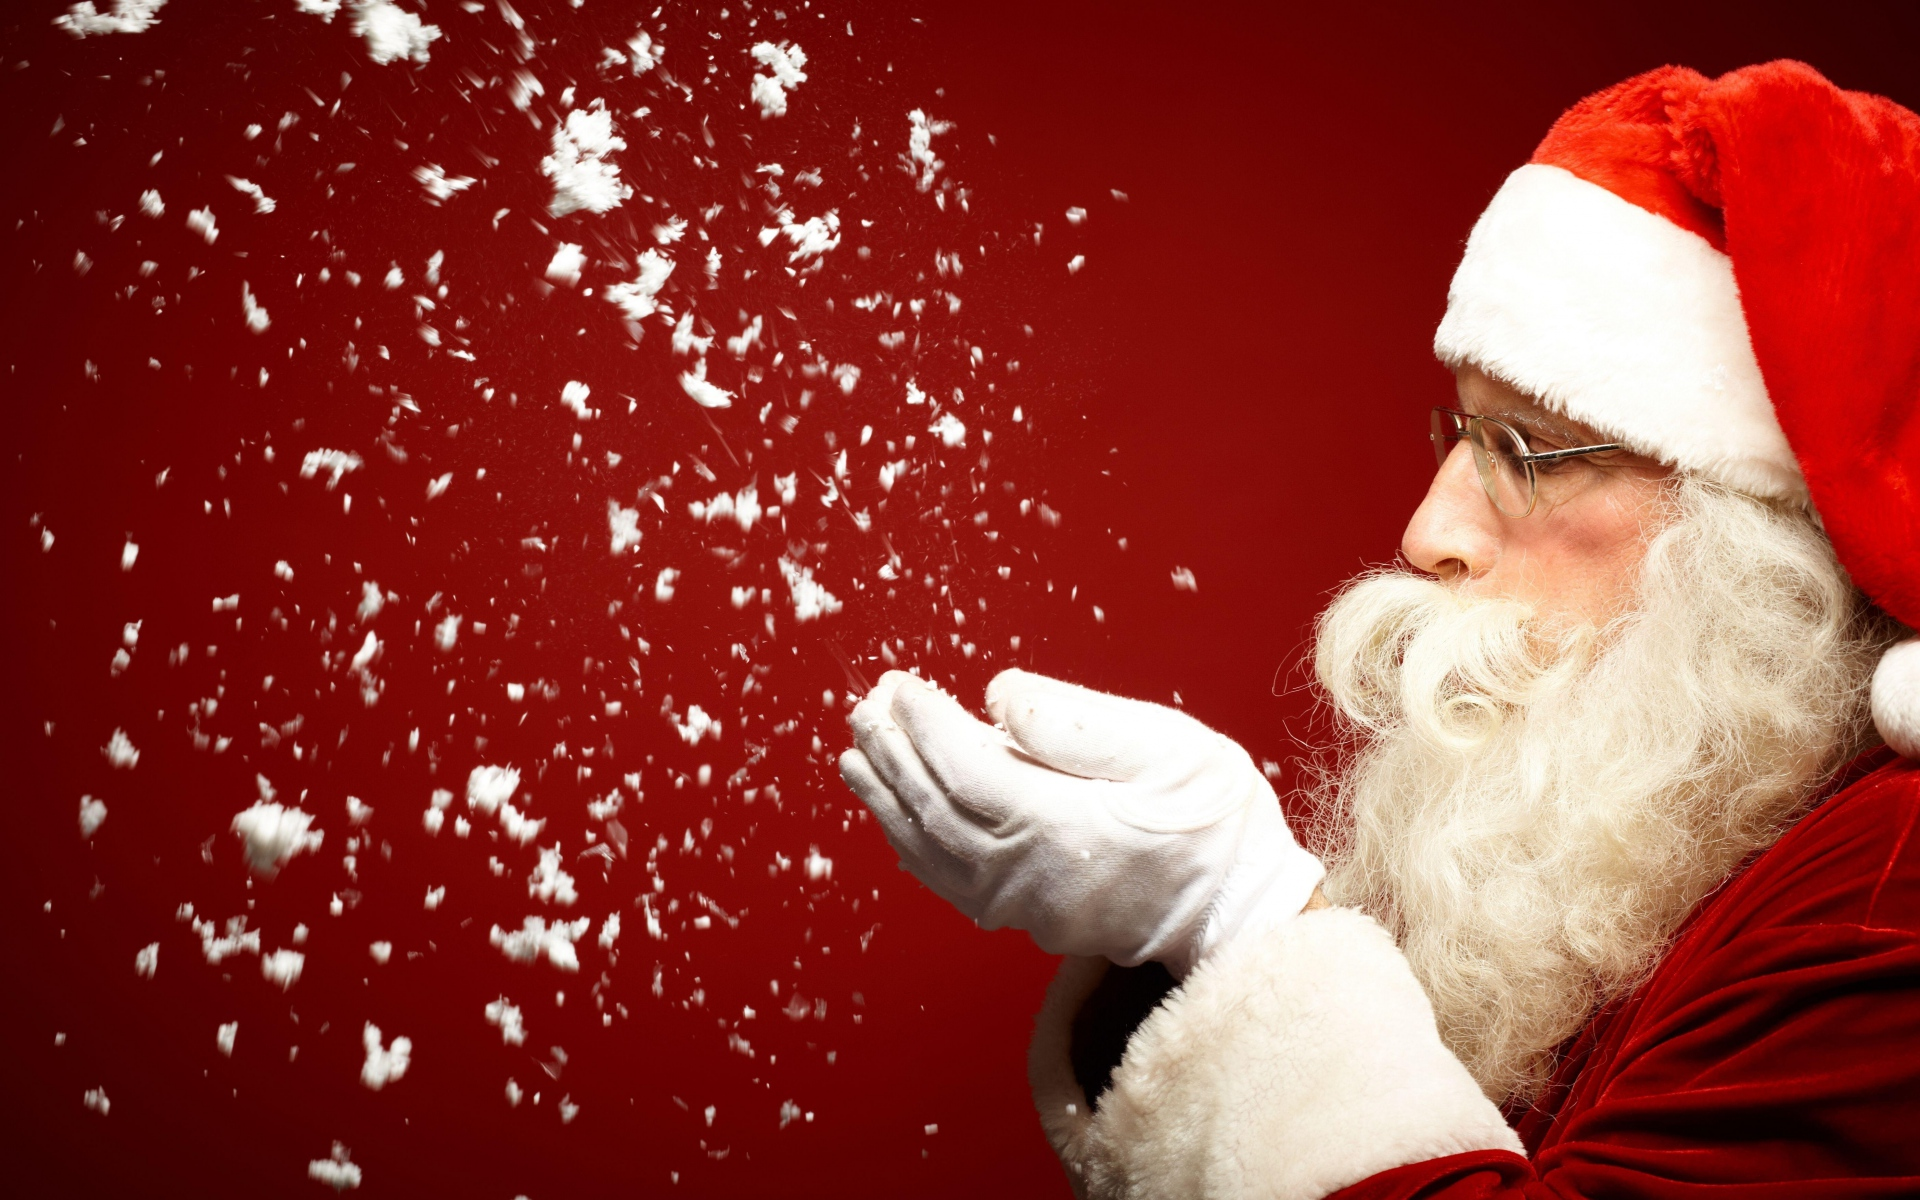 Christmas-Santa-Claus-Images